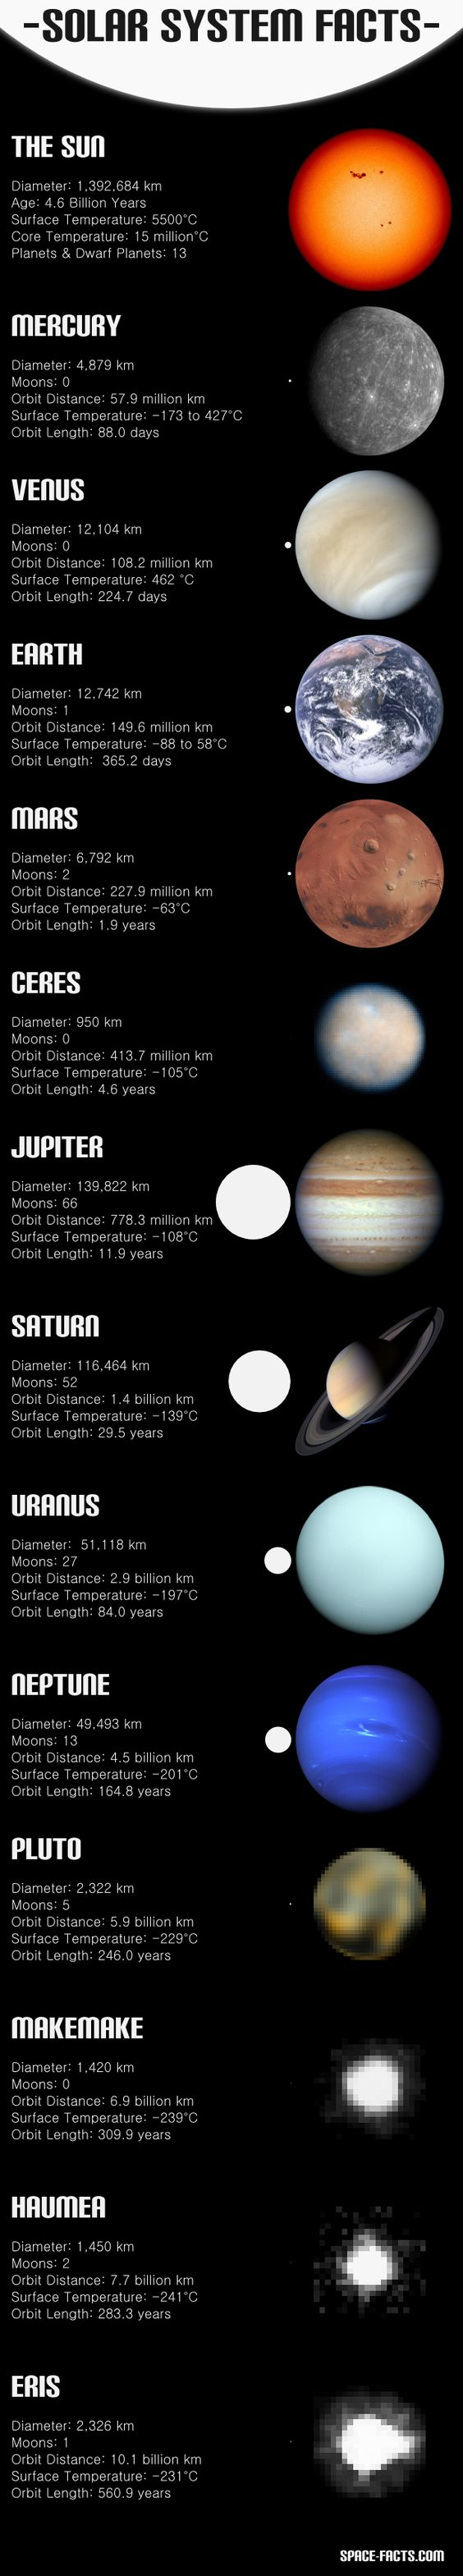 Solar System Facts. The last 4 are questionable. Pluto is ...